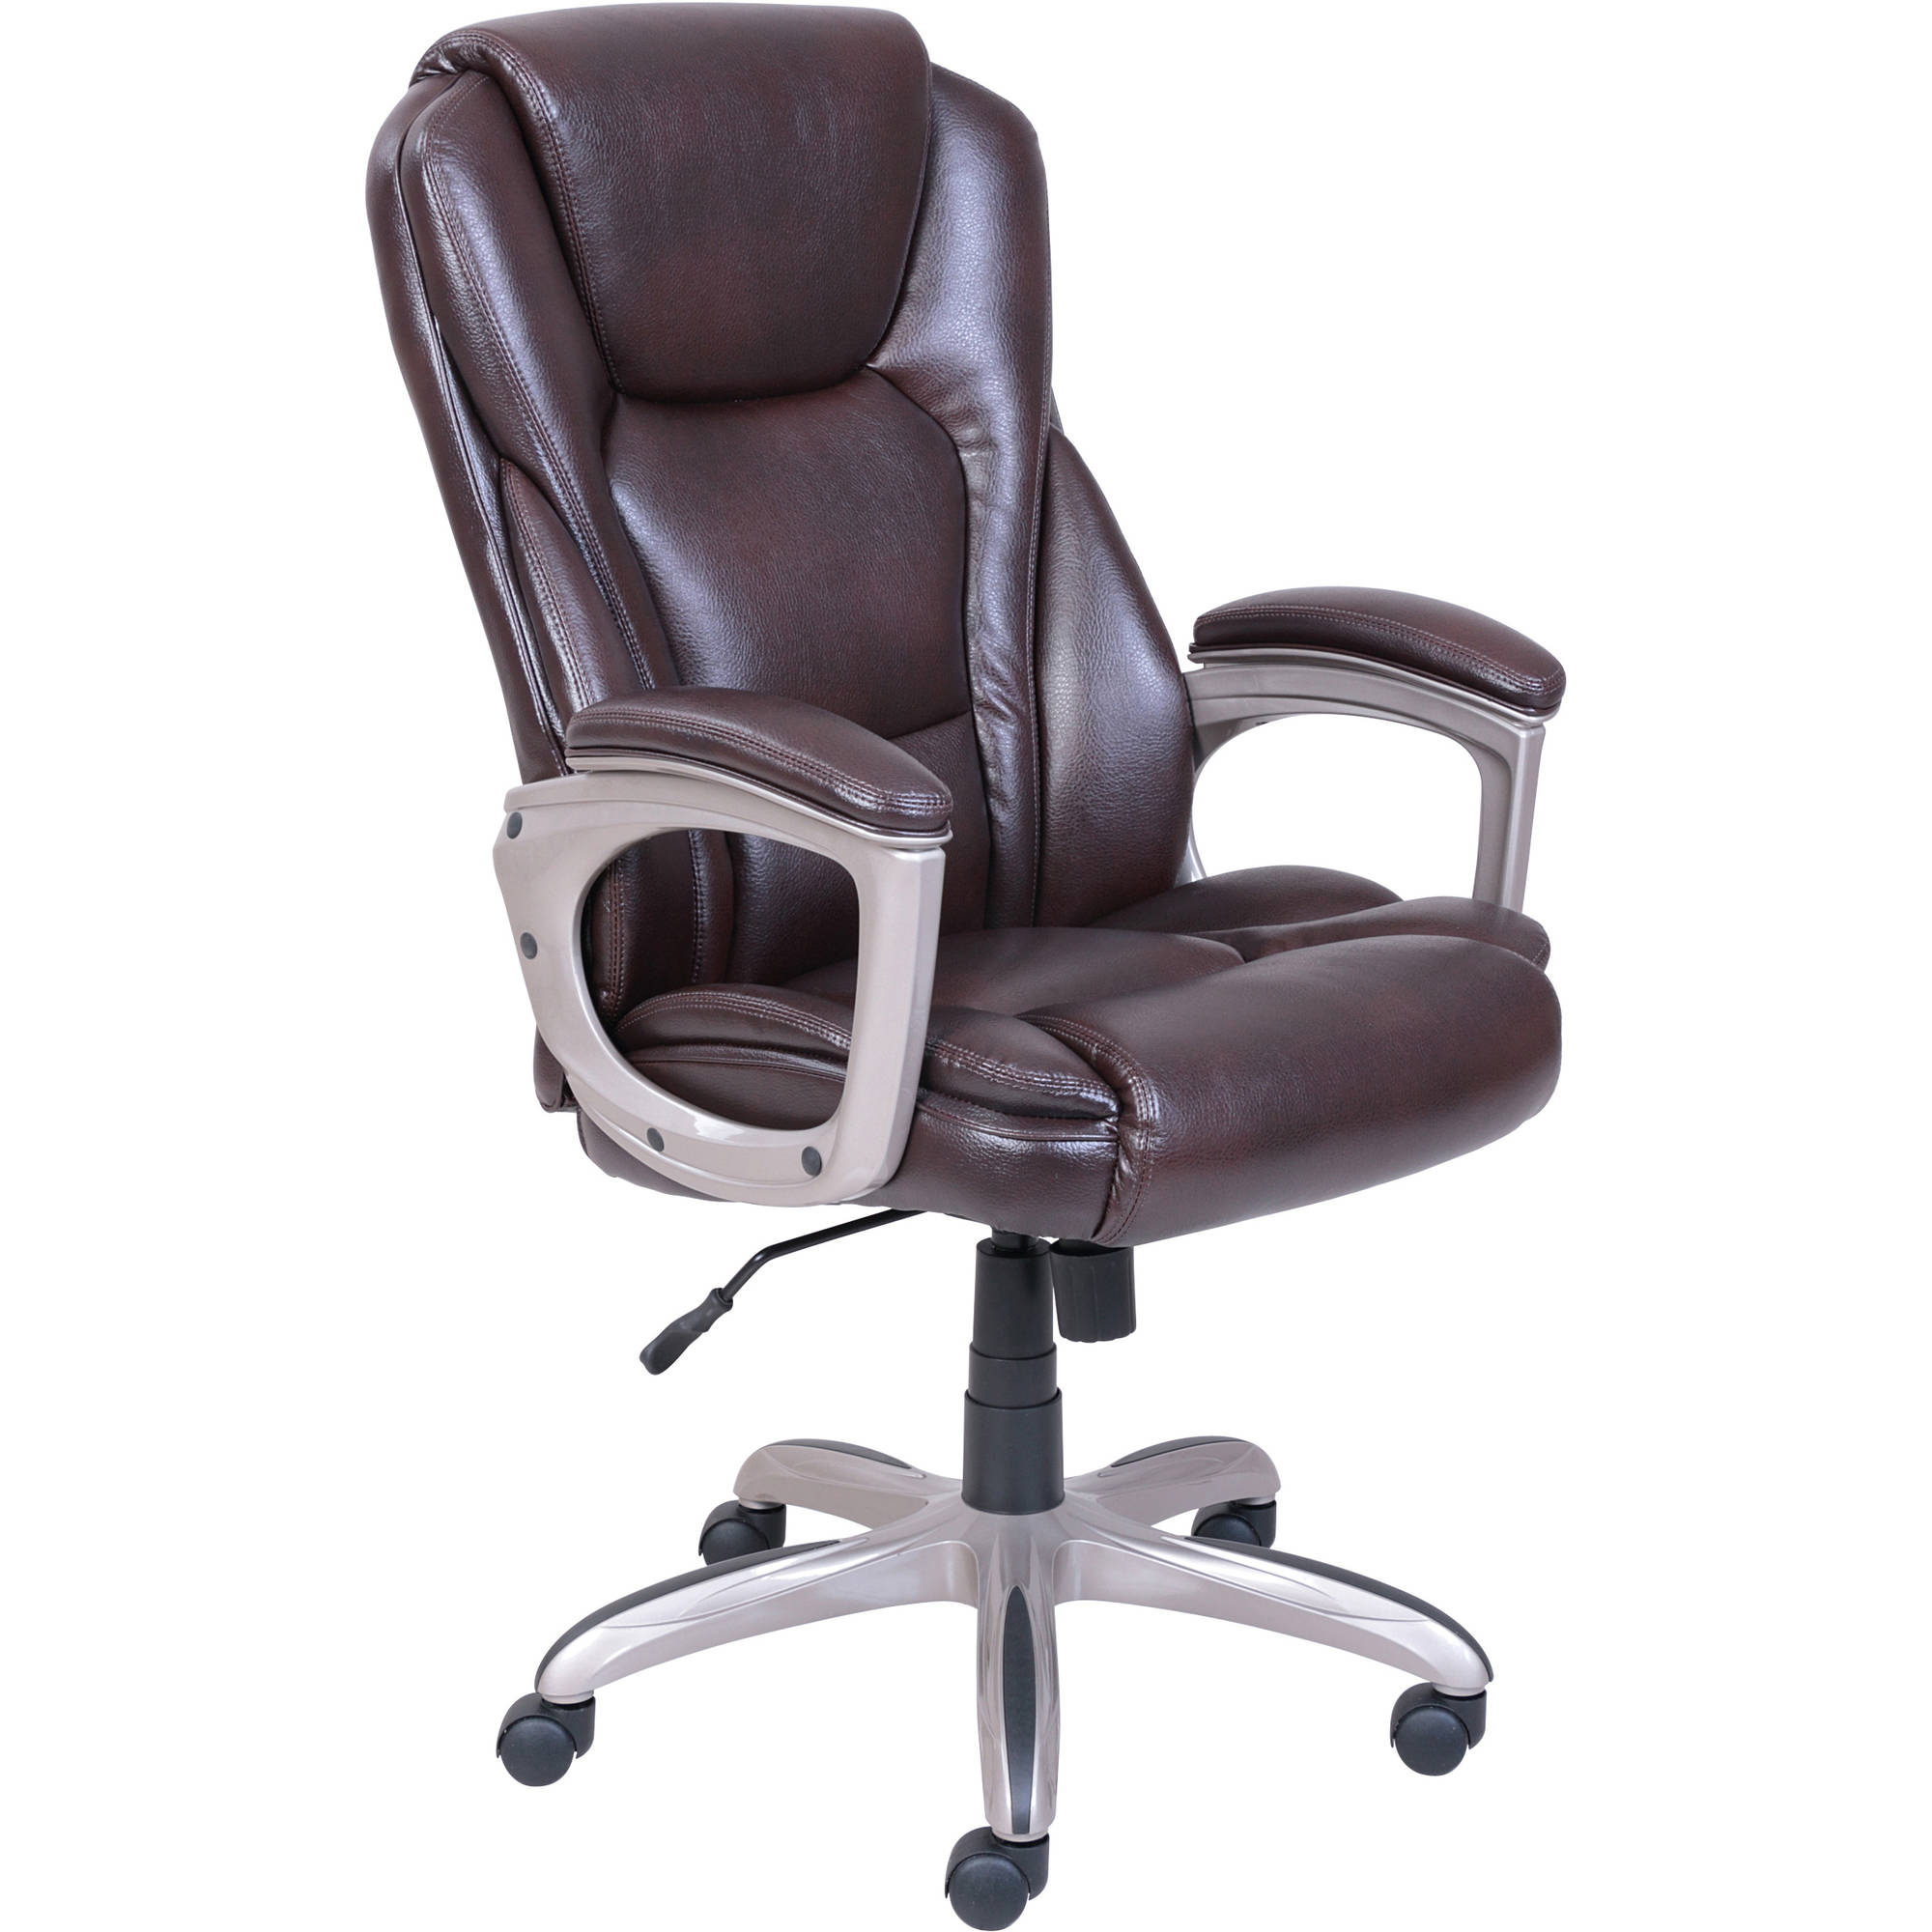 Office Chairs Walmart >> Serta Big Tall Commercial Office Chair With Memory Foam Walmart Com